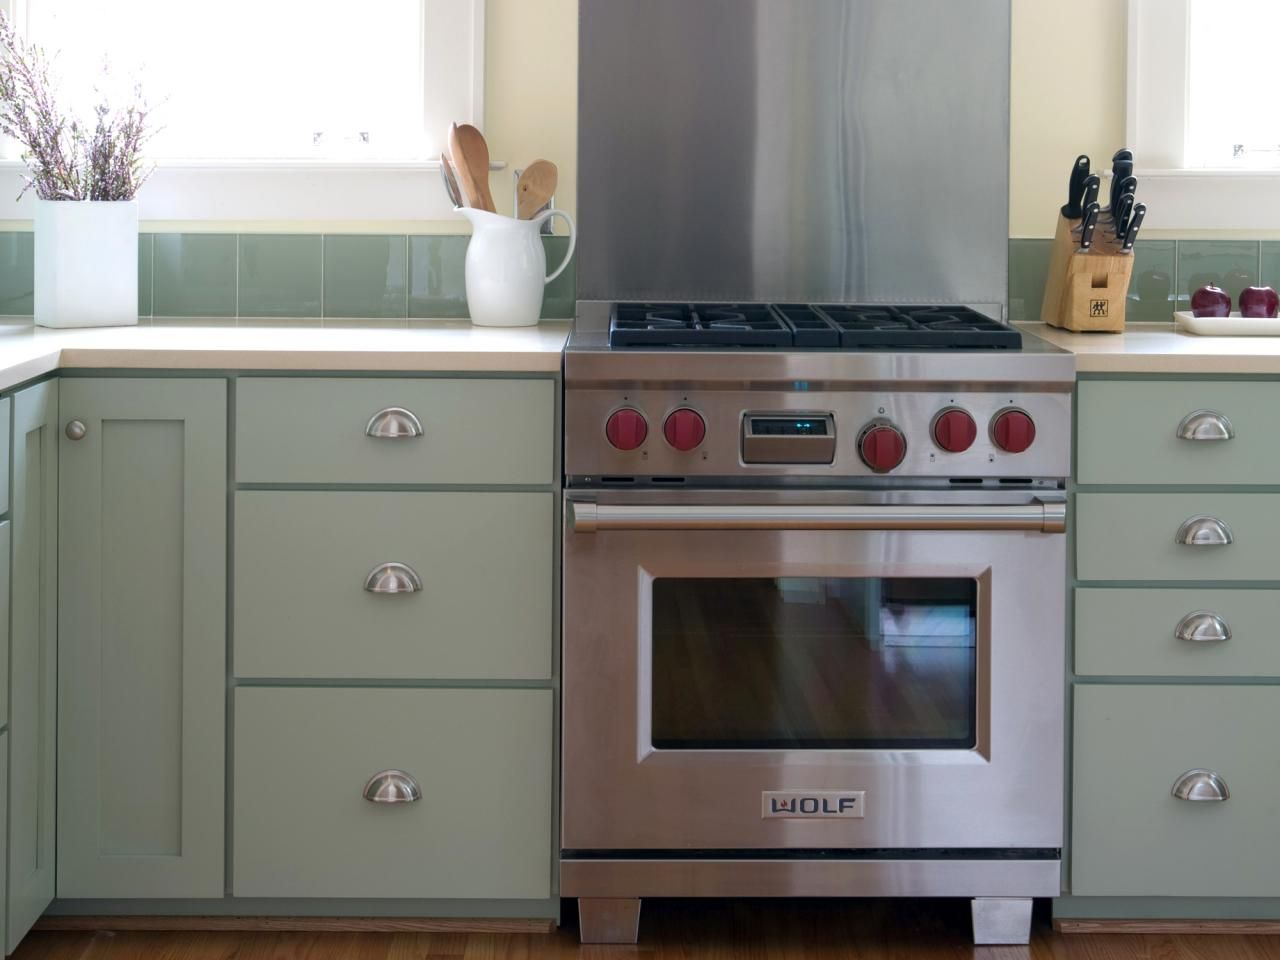 Kitchen Cabinet Paint Colors Pictures Ideas From Hgtv Rustic Kitchen Cabinets Industrial Decor Kitchen Rustic Kitchen Design